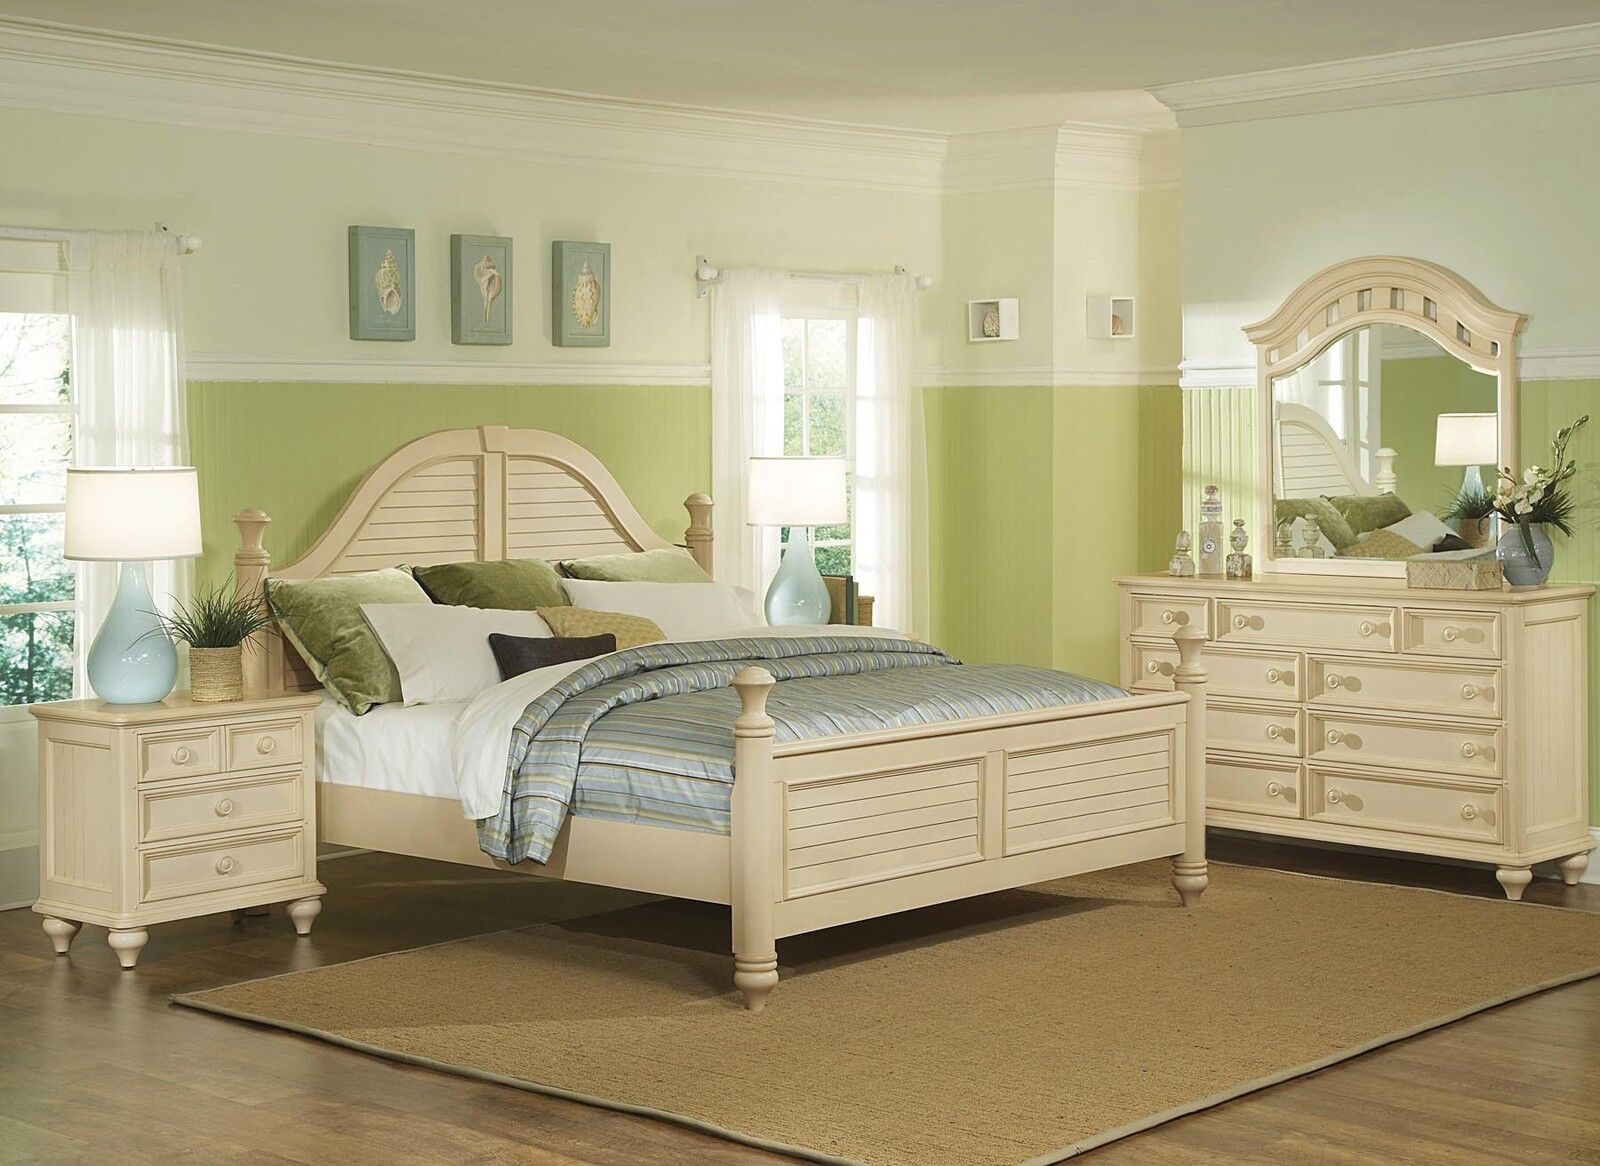 Antique white furniture bed mattress sale for White bedroom furniture